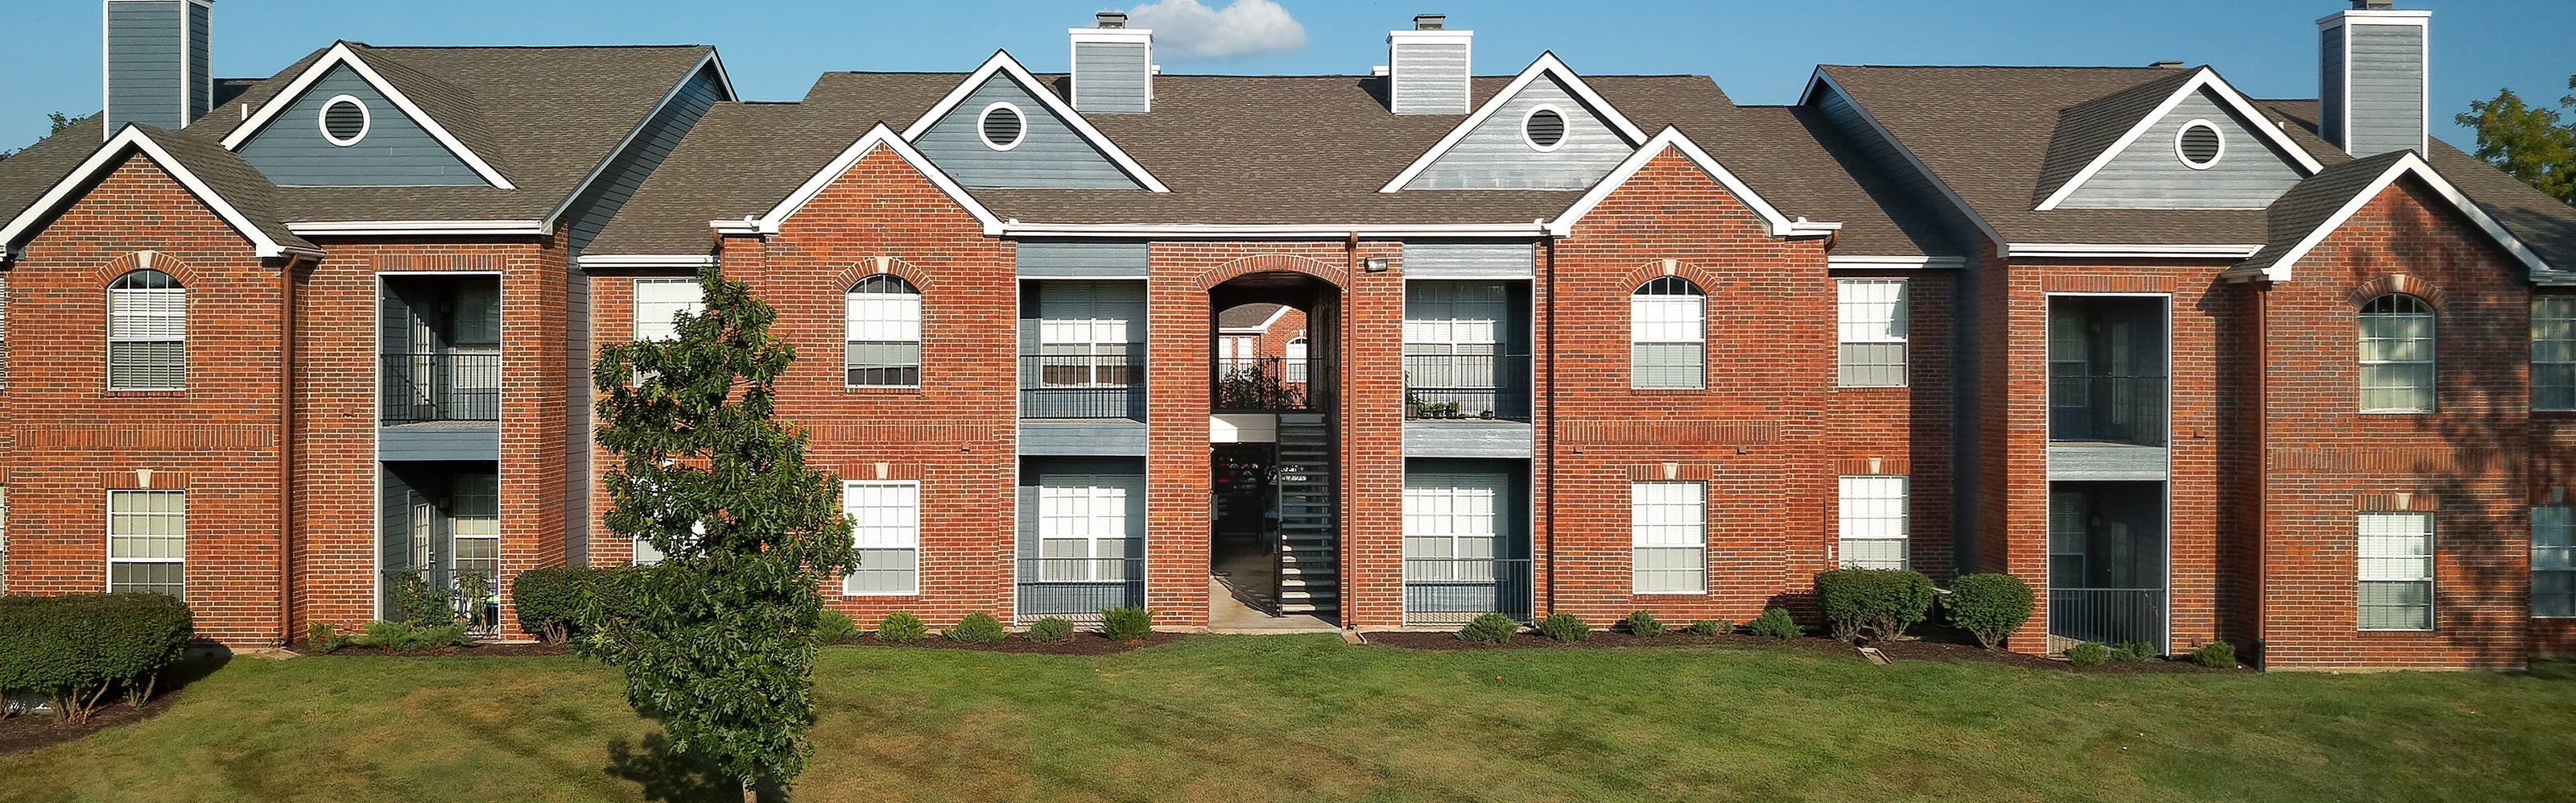 Weston Point Apartments - Banner of exterior